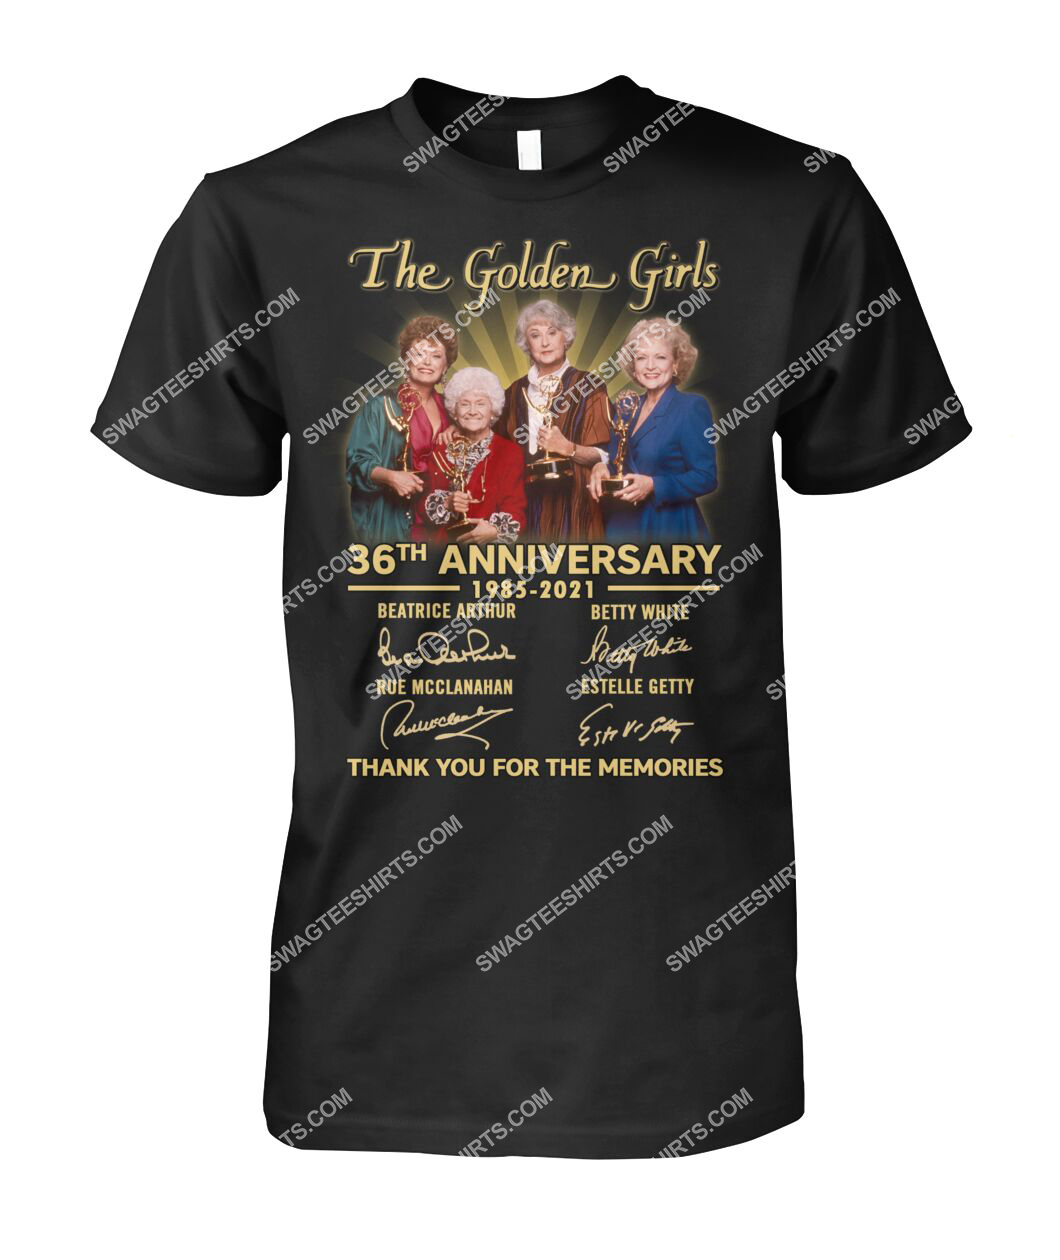 the golden girl 36th anniversary 1985 2021 thank you for the memories signatures tshirt 1